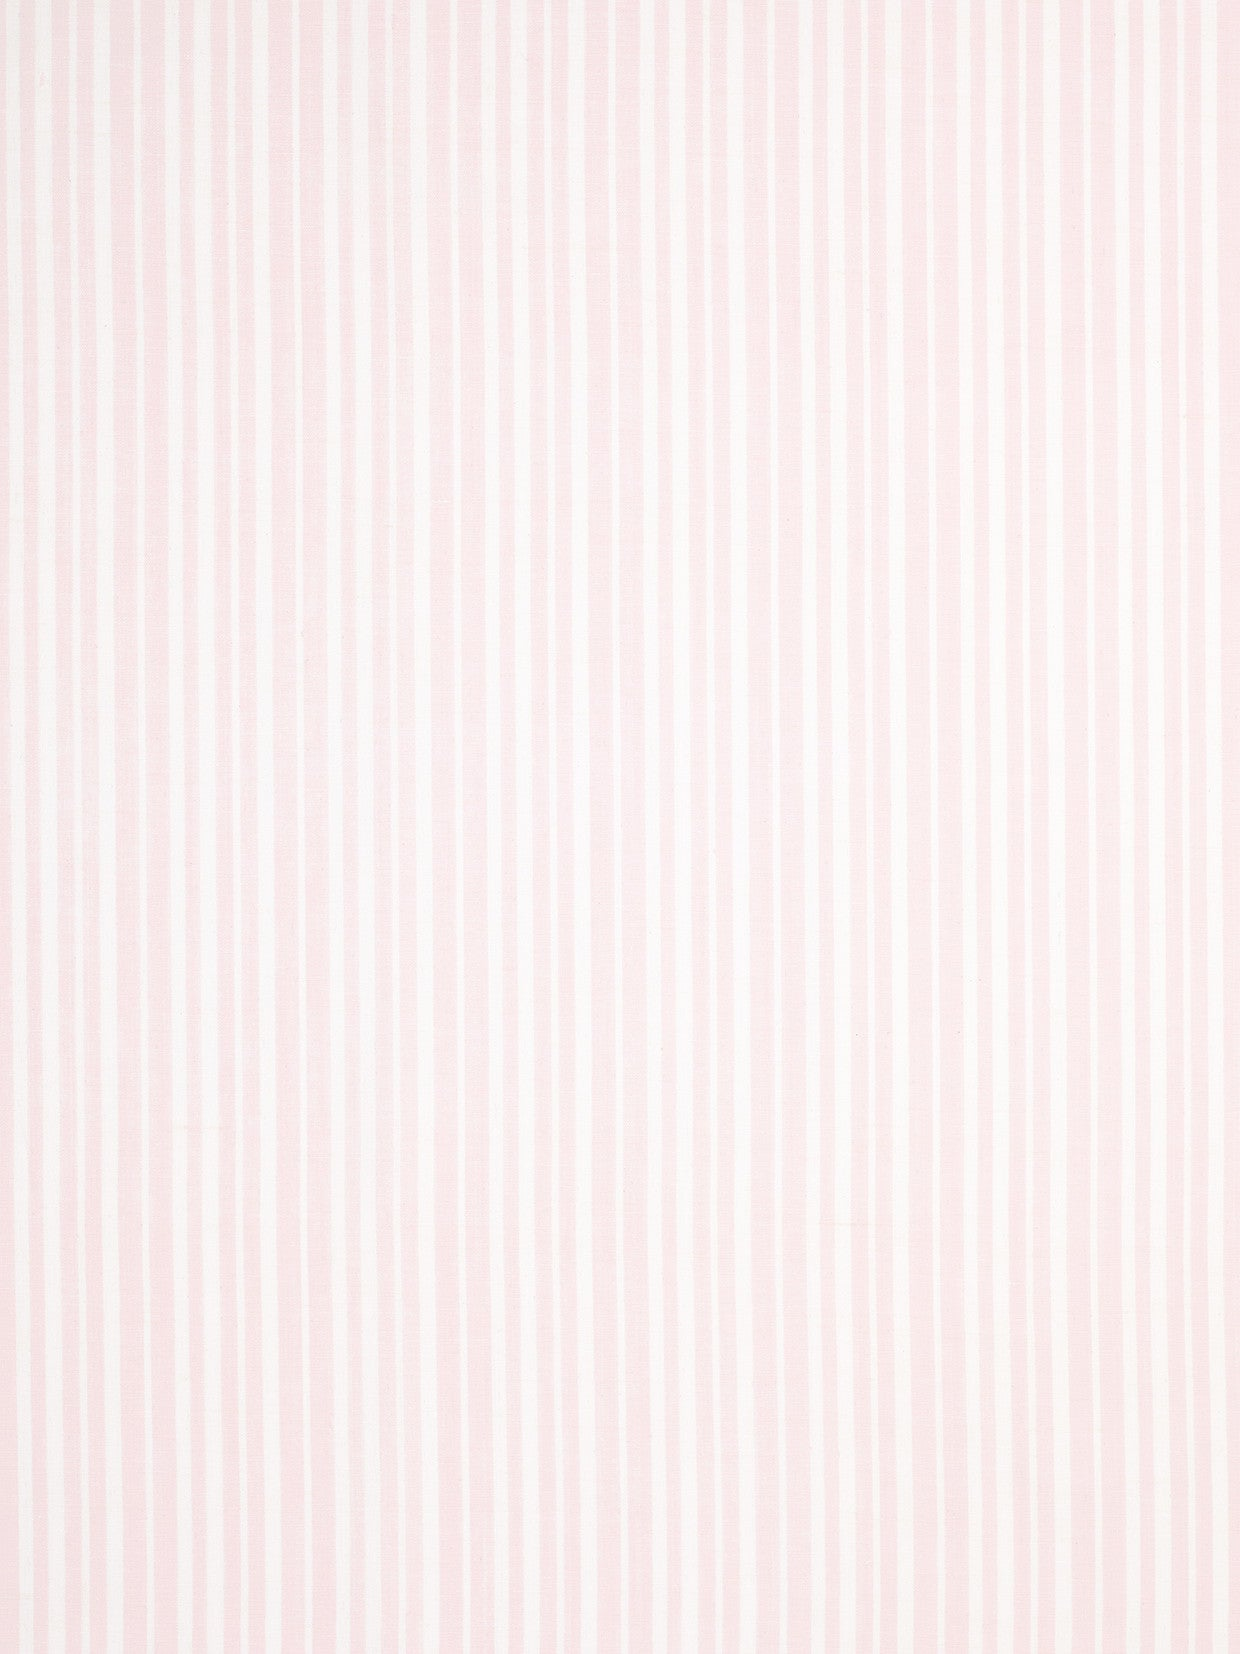 Palermo Ticking Stripe Cotton Linen Home Decor Fabric by the Meter or by the yard for curtains, blinds or upholstery in Light Tea Rose Pink ships from Canada (USA)